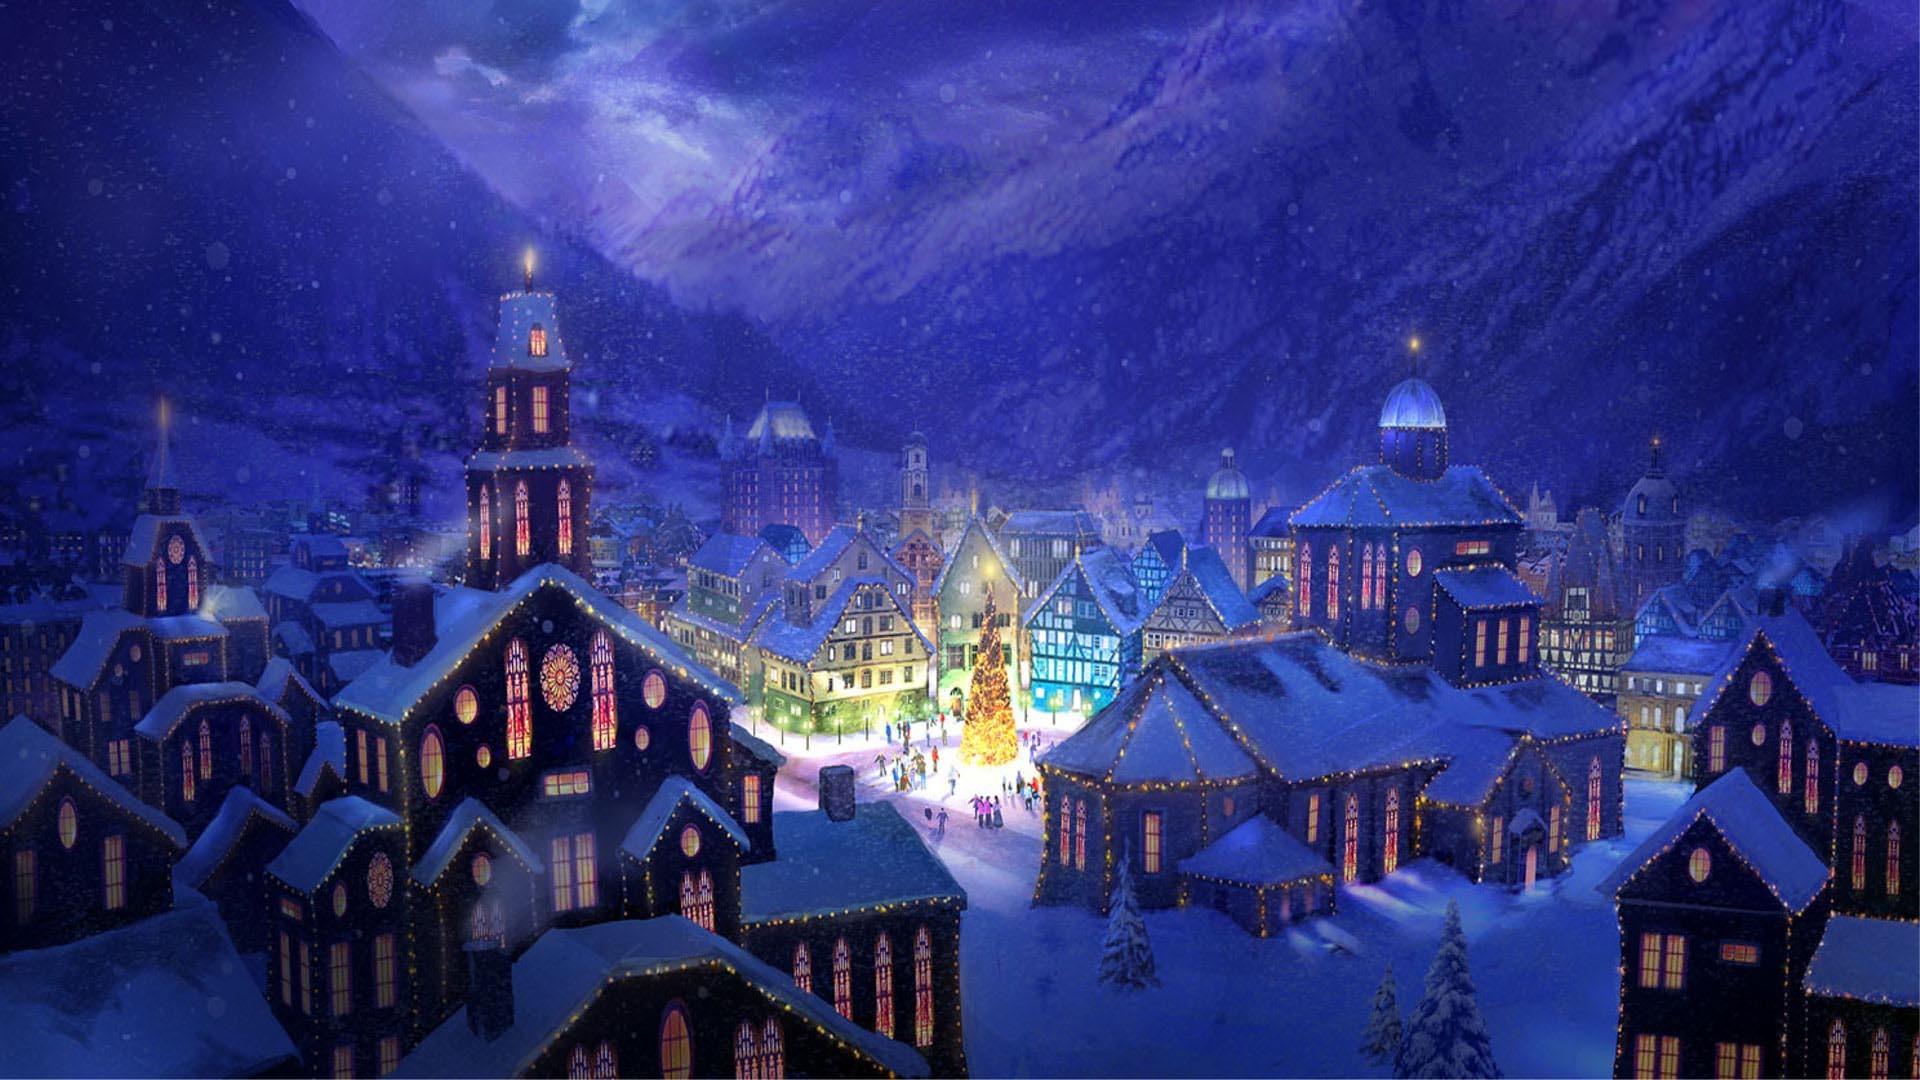 Download Merry Christmas HD Image · Merry Christmas hd Wallpapers …